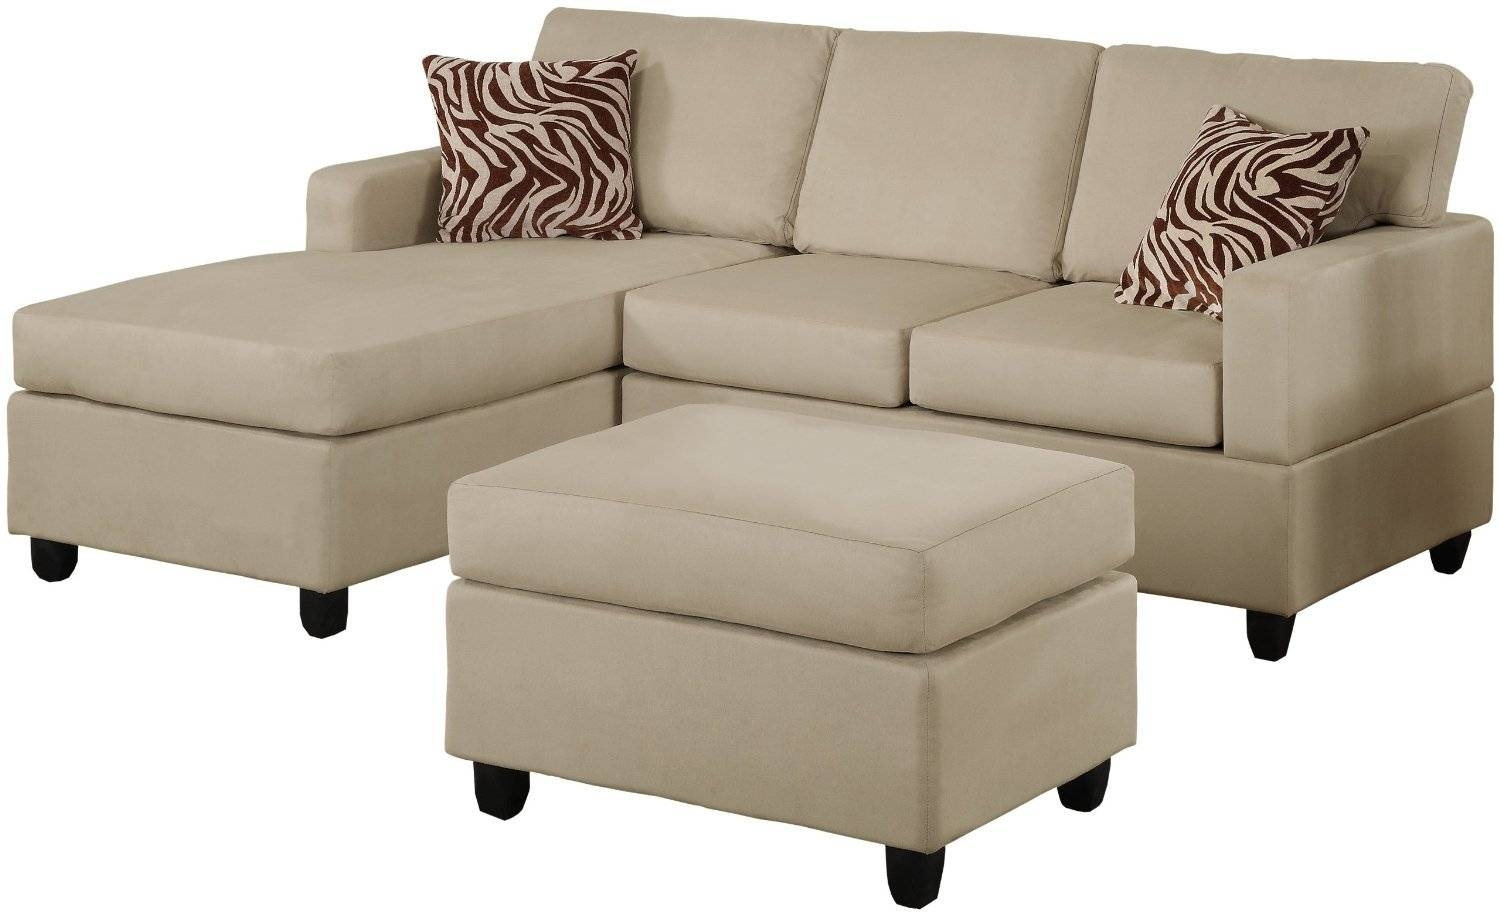 Sofa : Cool Sofas For Cheap Sale Home Design Furniture Decorating in Cool Cheap Sofas (Image 22 of 30)